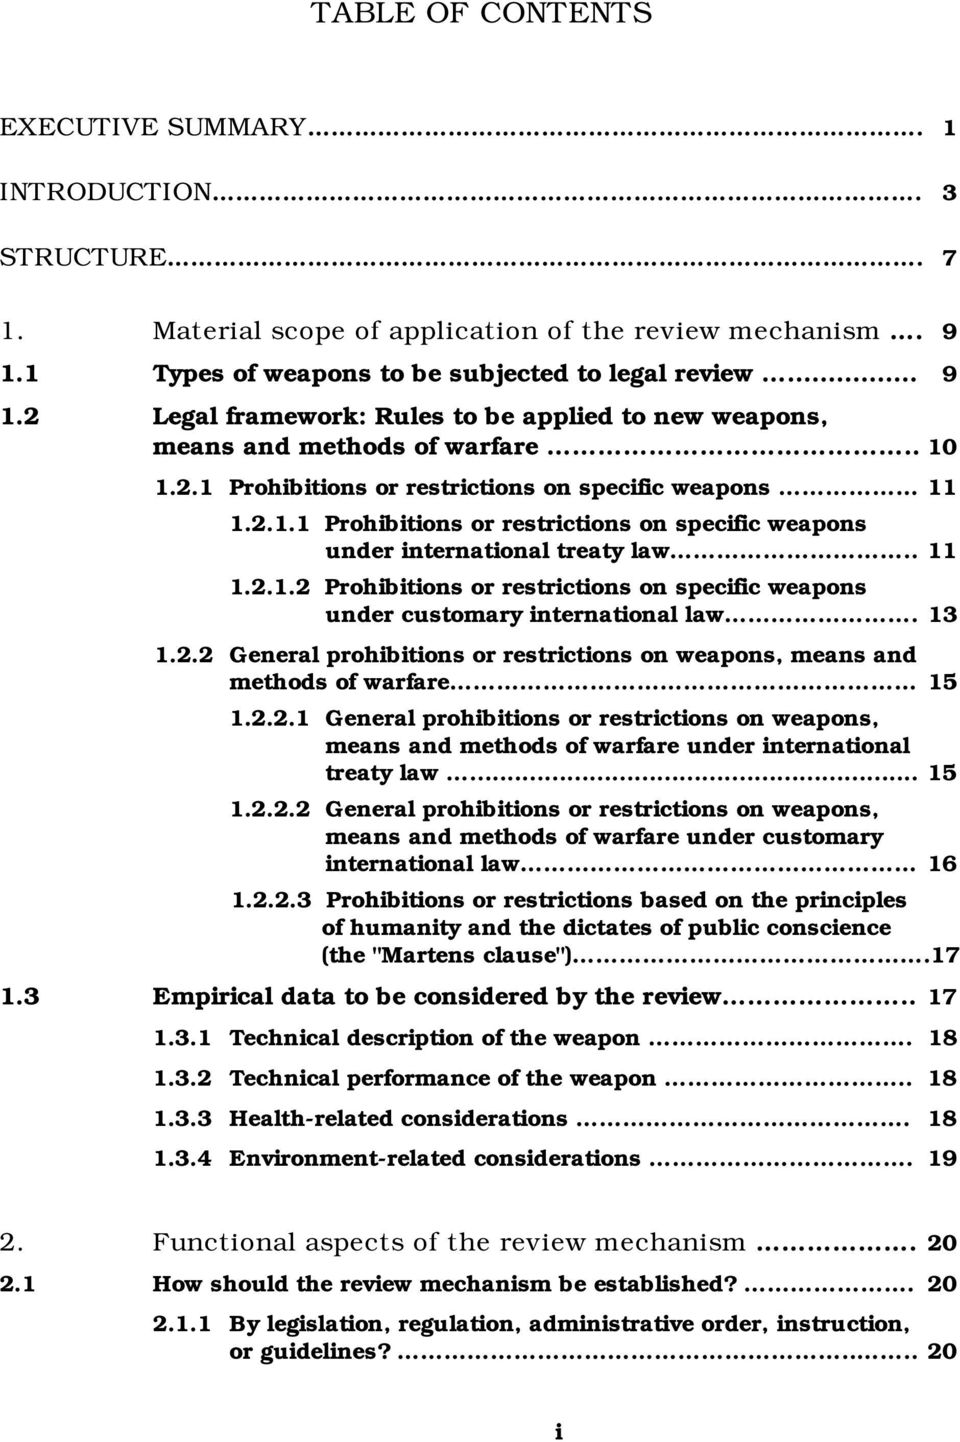 2.1.1 Prohibitions or restrictions on specific weapons under international treaty law.. 11 1.2.1.2 Prohibitions or restrictions on specific weapons under customary international law. 13 1.2.2 General prohibitions or restrictions on weapons, means and methods of warfare 15 1.